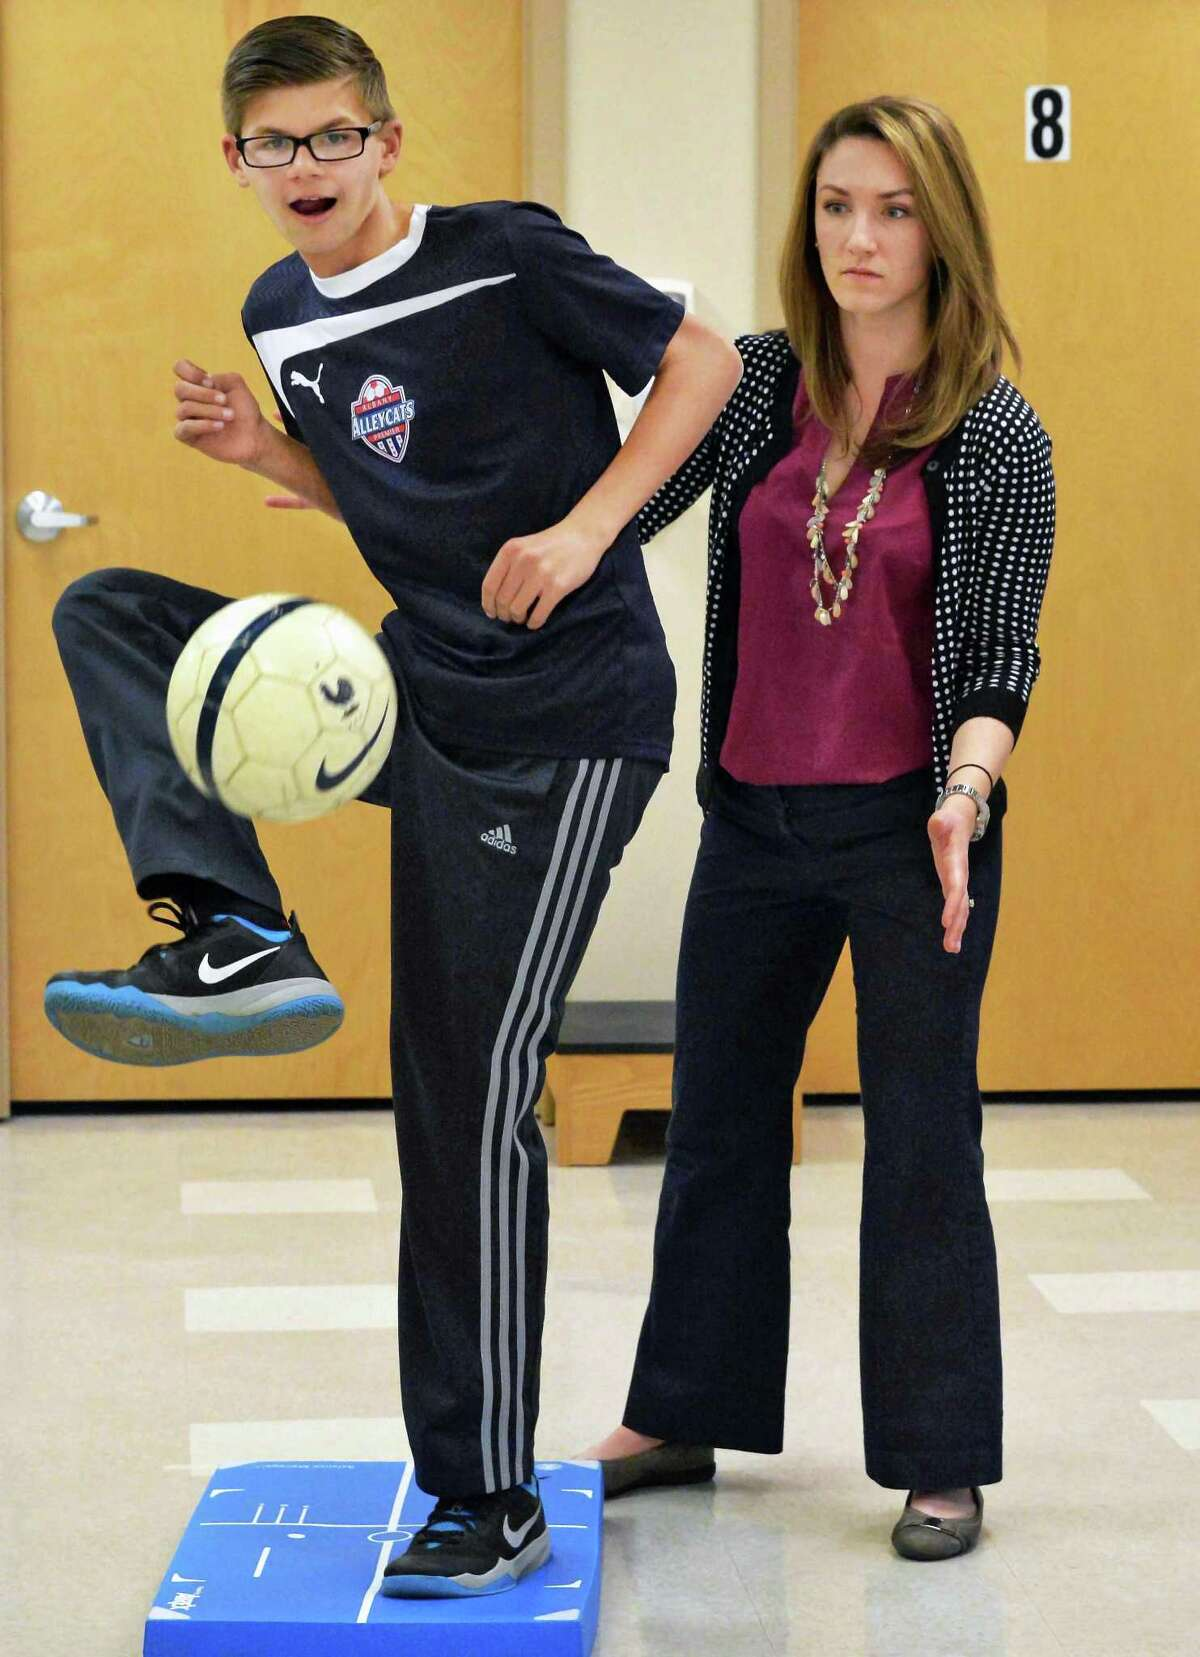 Physical therapist Audrey Paslow, right, conducts a sports readiness exercise with Conor Van Sise, 14, of the Albany Alleycats soccer club, at Ellis Medicine Friday Nov.20, 2015 in Clifton Park, NY. (John Carl D'Annibale / Times Union)